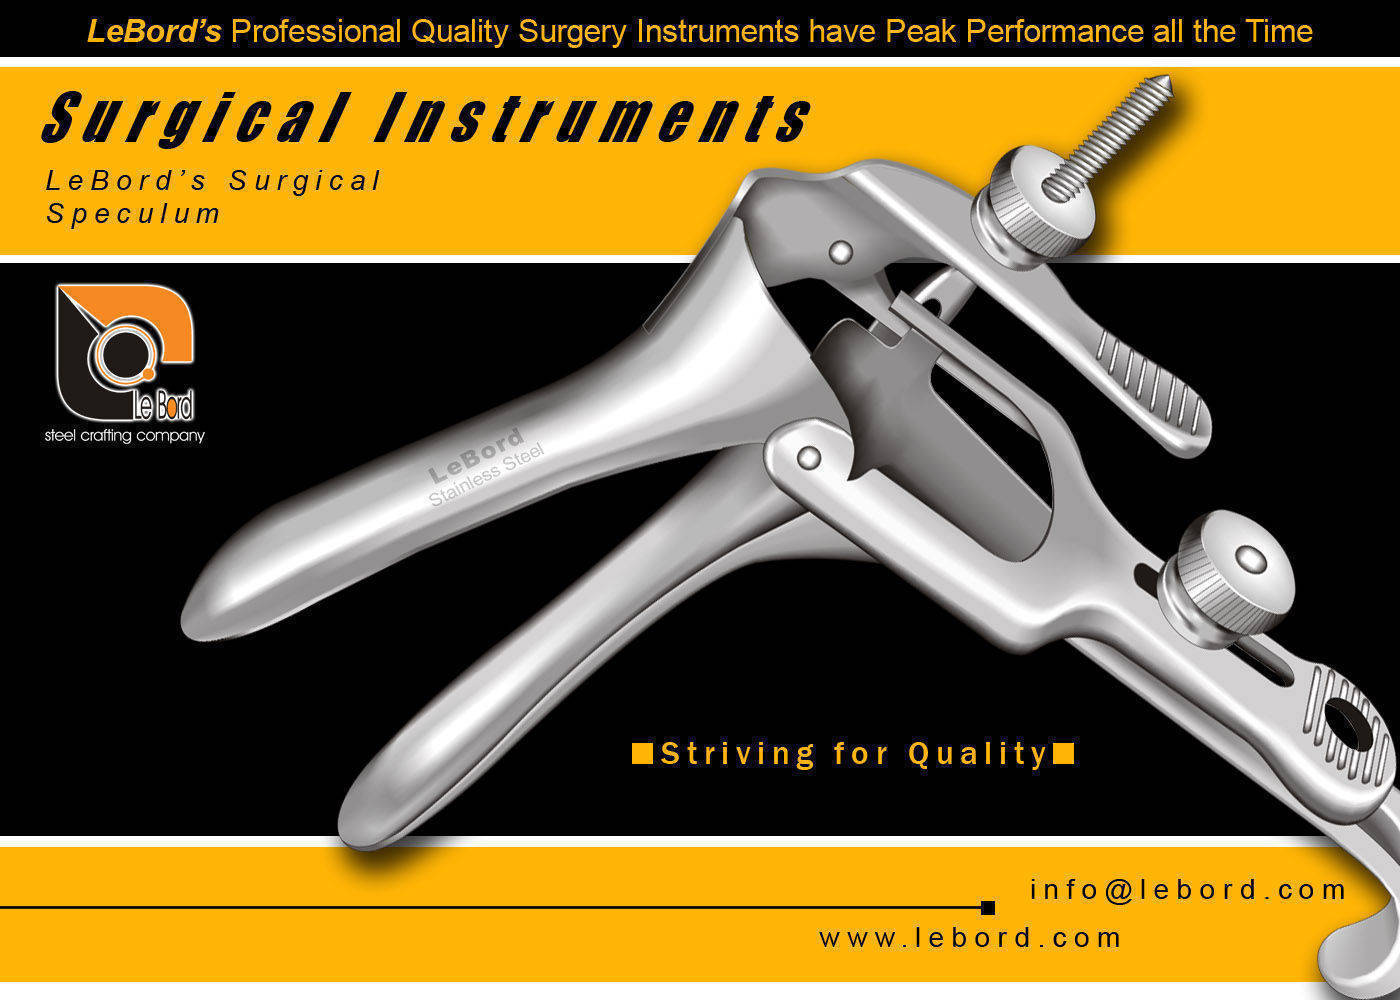 Orthopedic Instruments, Buy from Lebord (Surgical